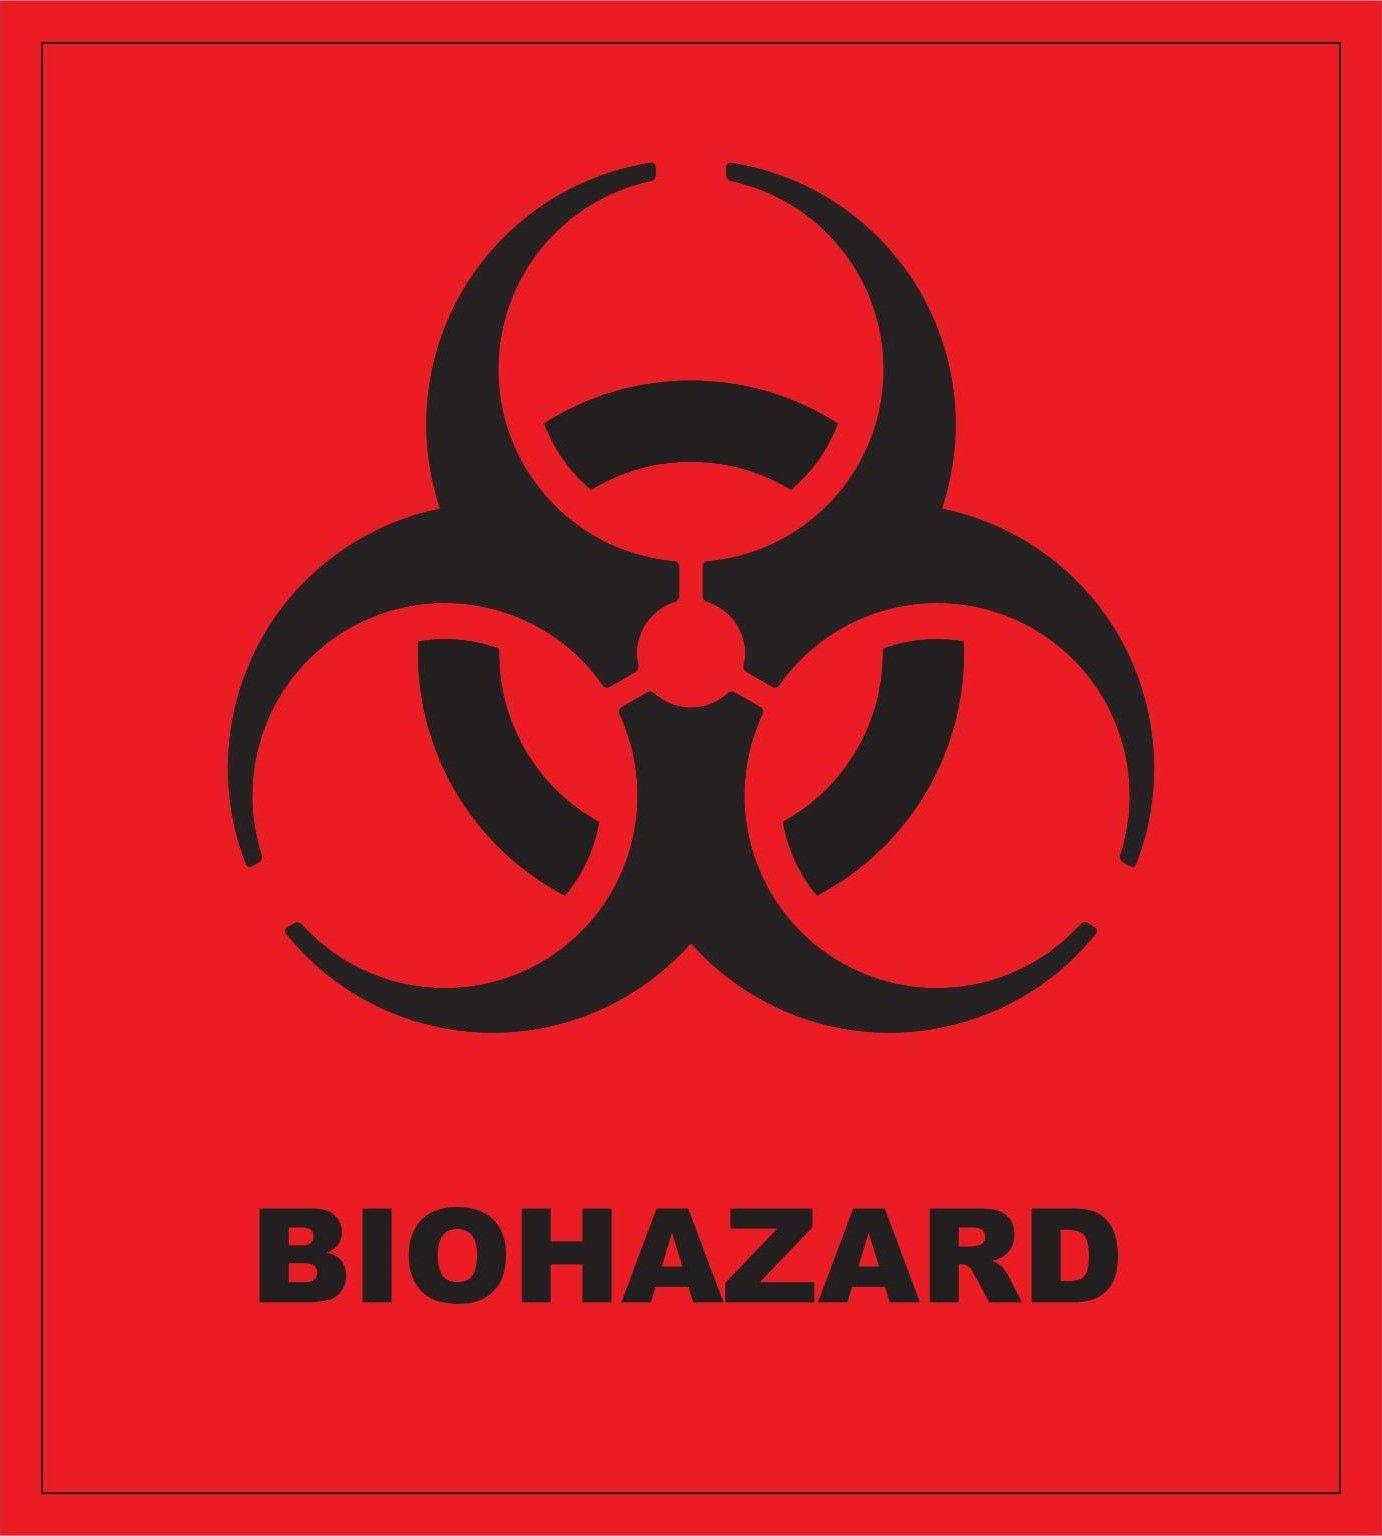 Biohazard Symbol And Text Black On Red Universal Labelslogos